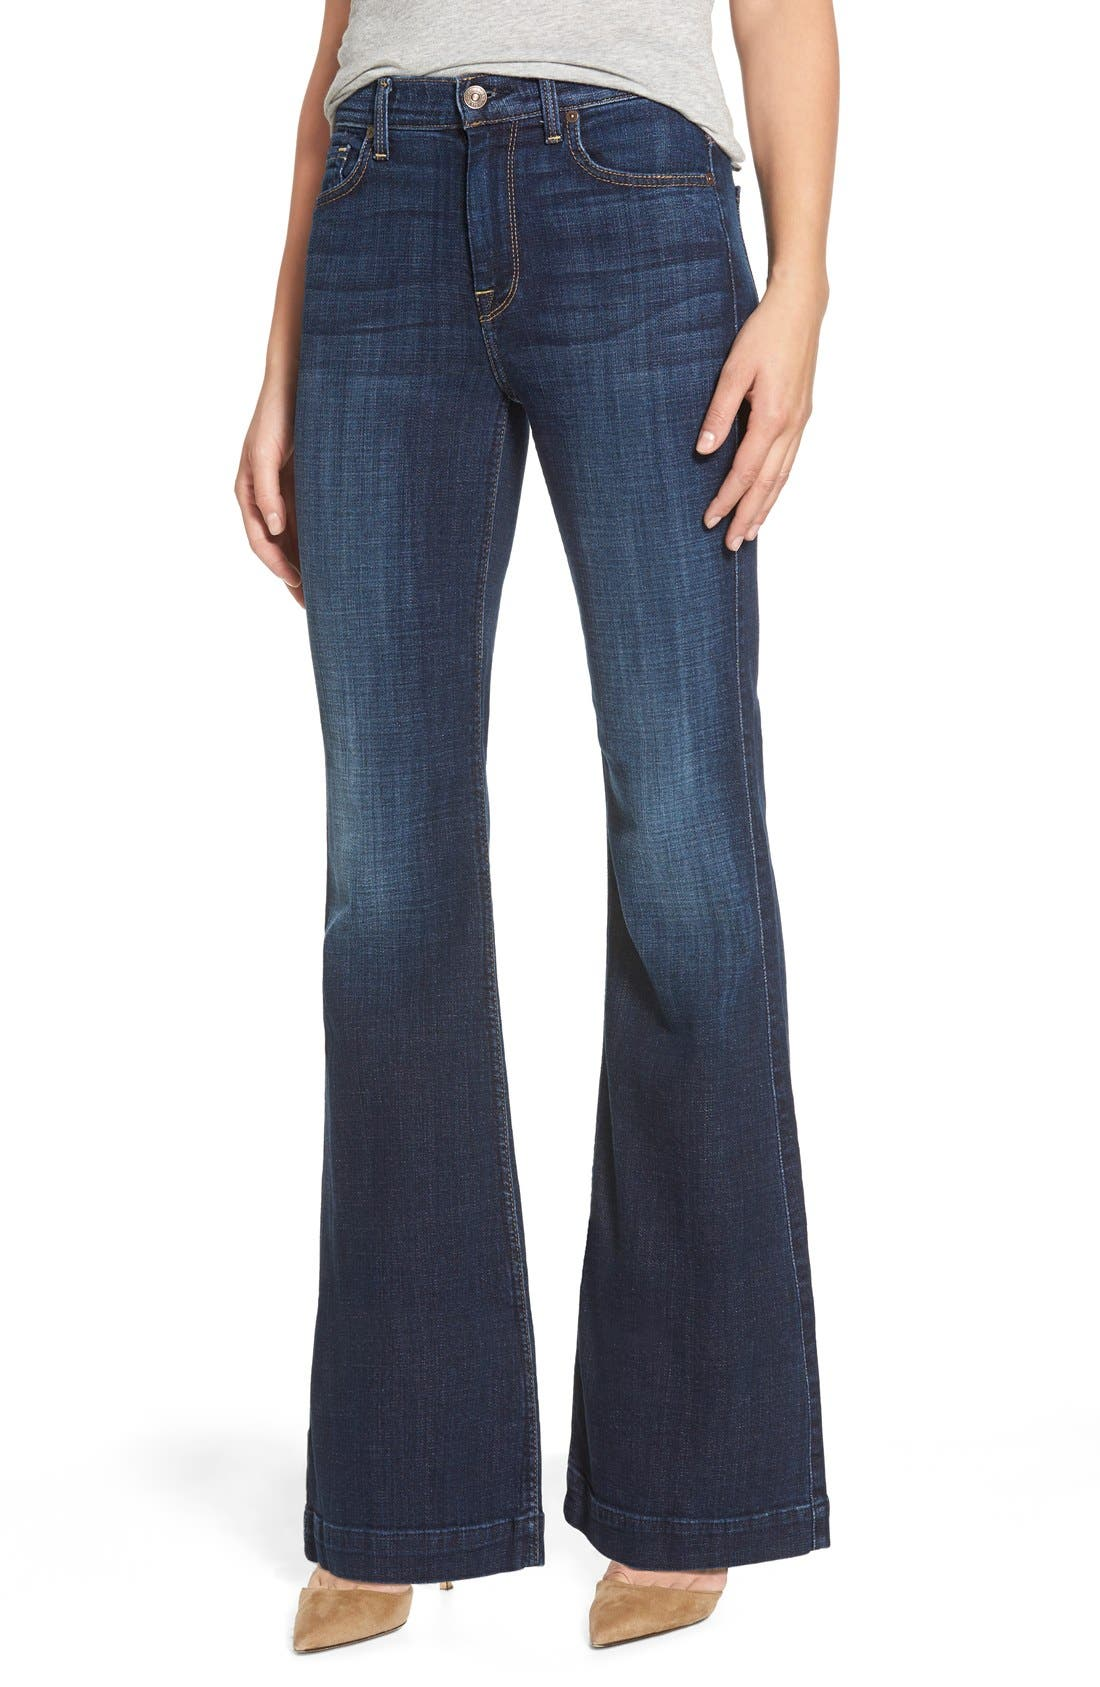 Alternate Image 1 Selected - 7 For All Mankind® 'Tailorless Ginger' High Rise Flare Jeans (Royal Broken Twill) (Short)